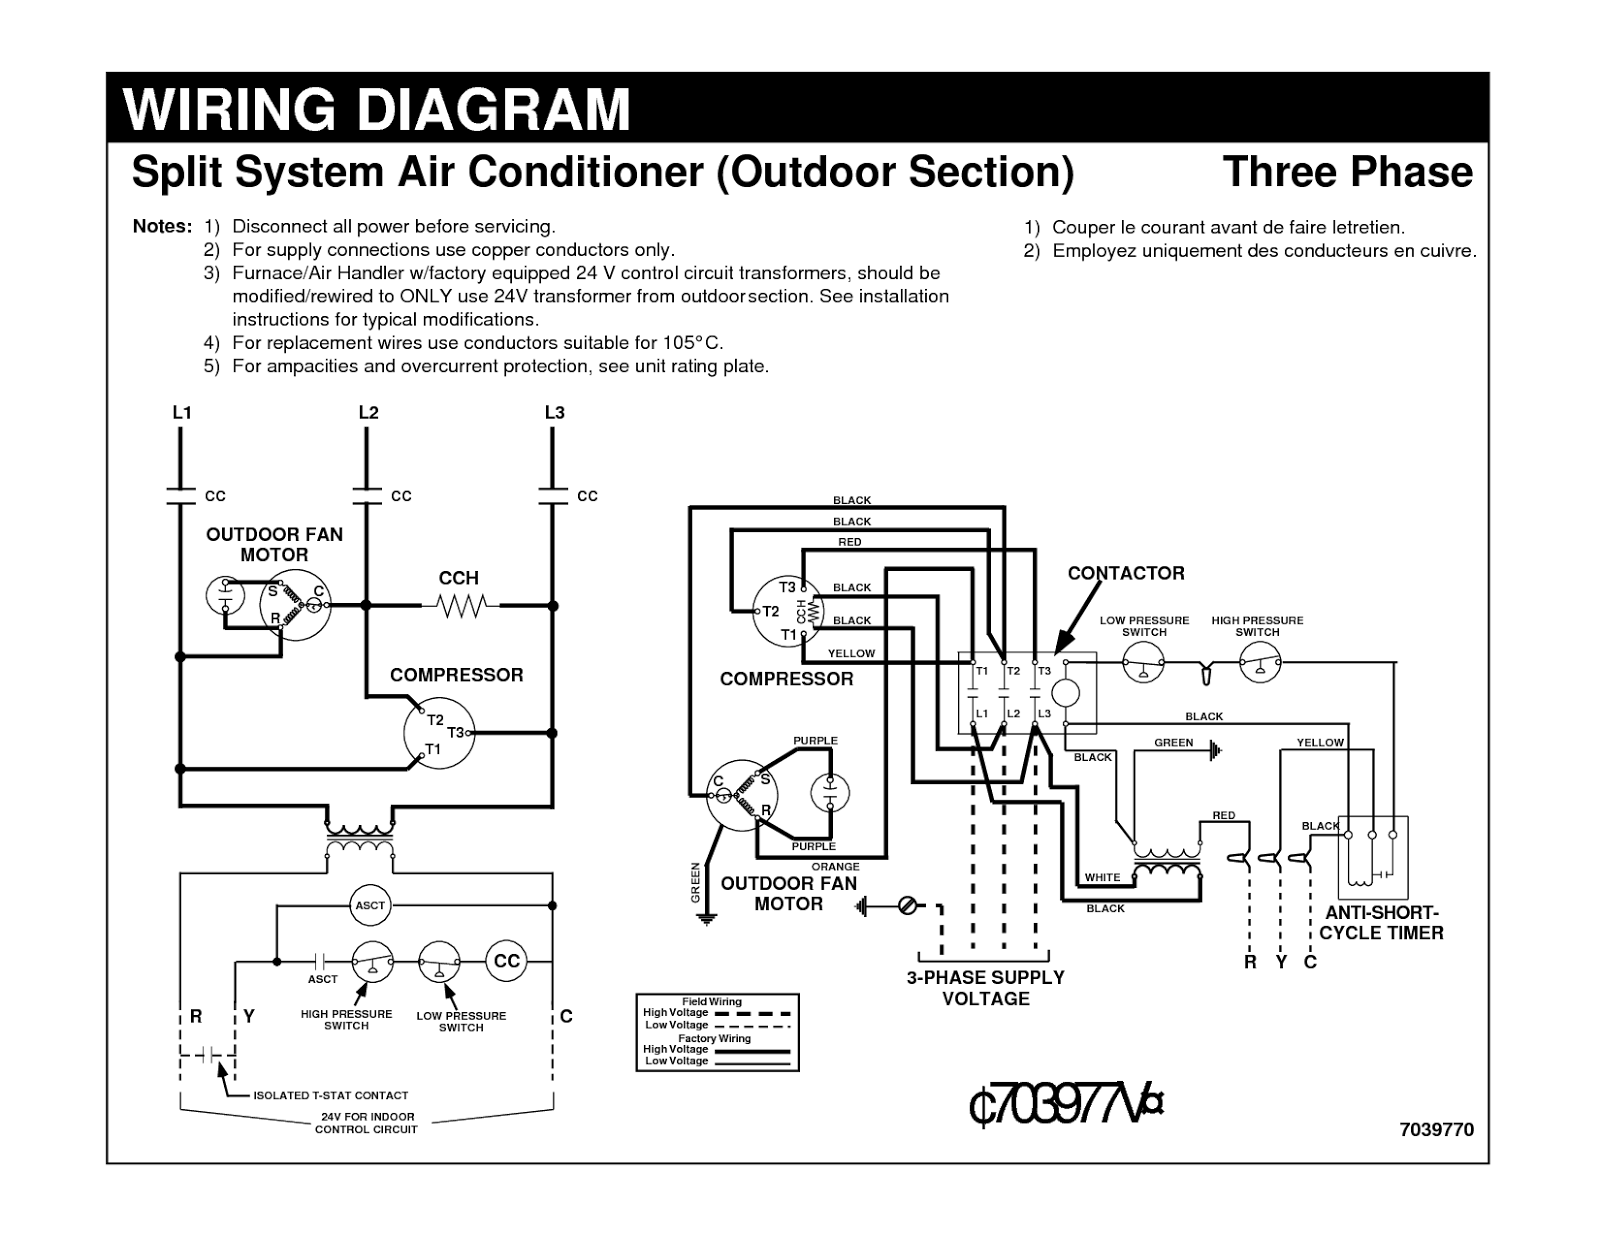 electrical wiring diagrams for air conditioning systems part one rh electrical knowhow com air conditioning wiring diagram 98 camaro air conditioning wiring diagrams